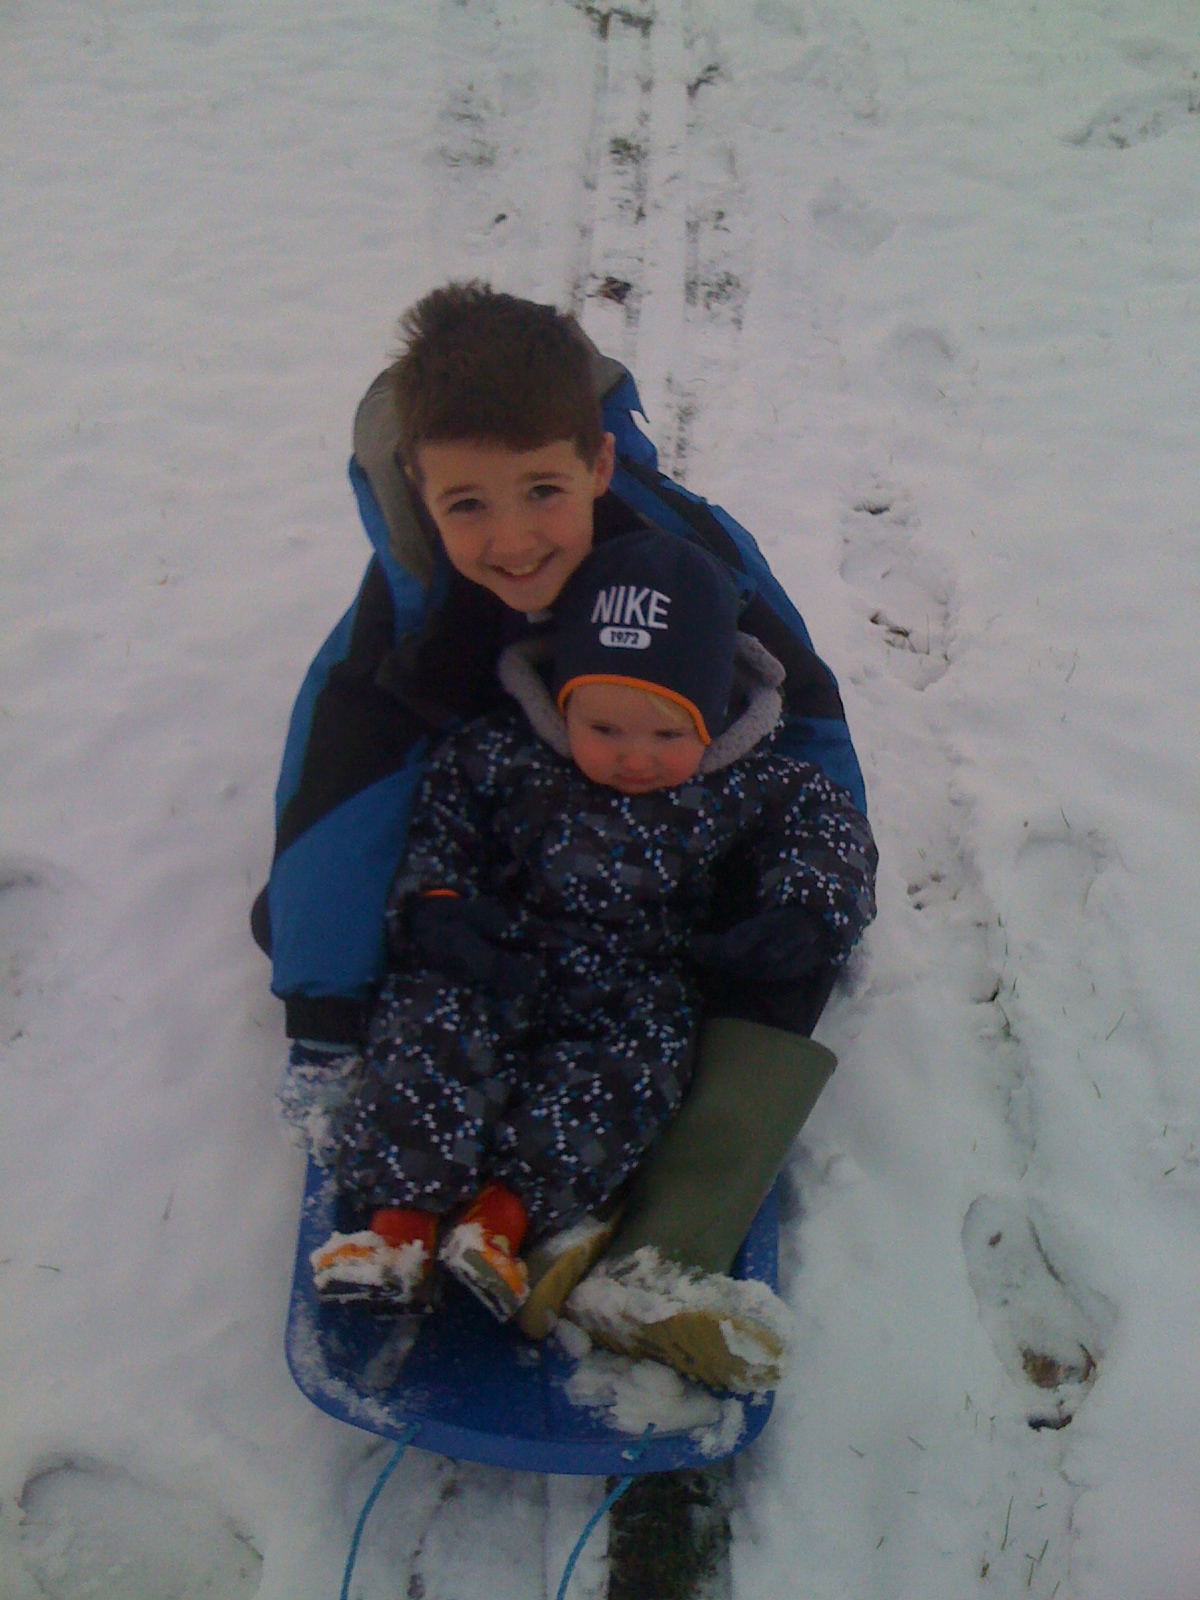 Kian and Isaac in the snow, December 2010